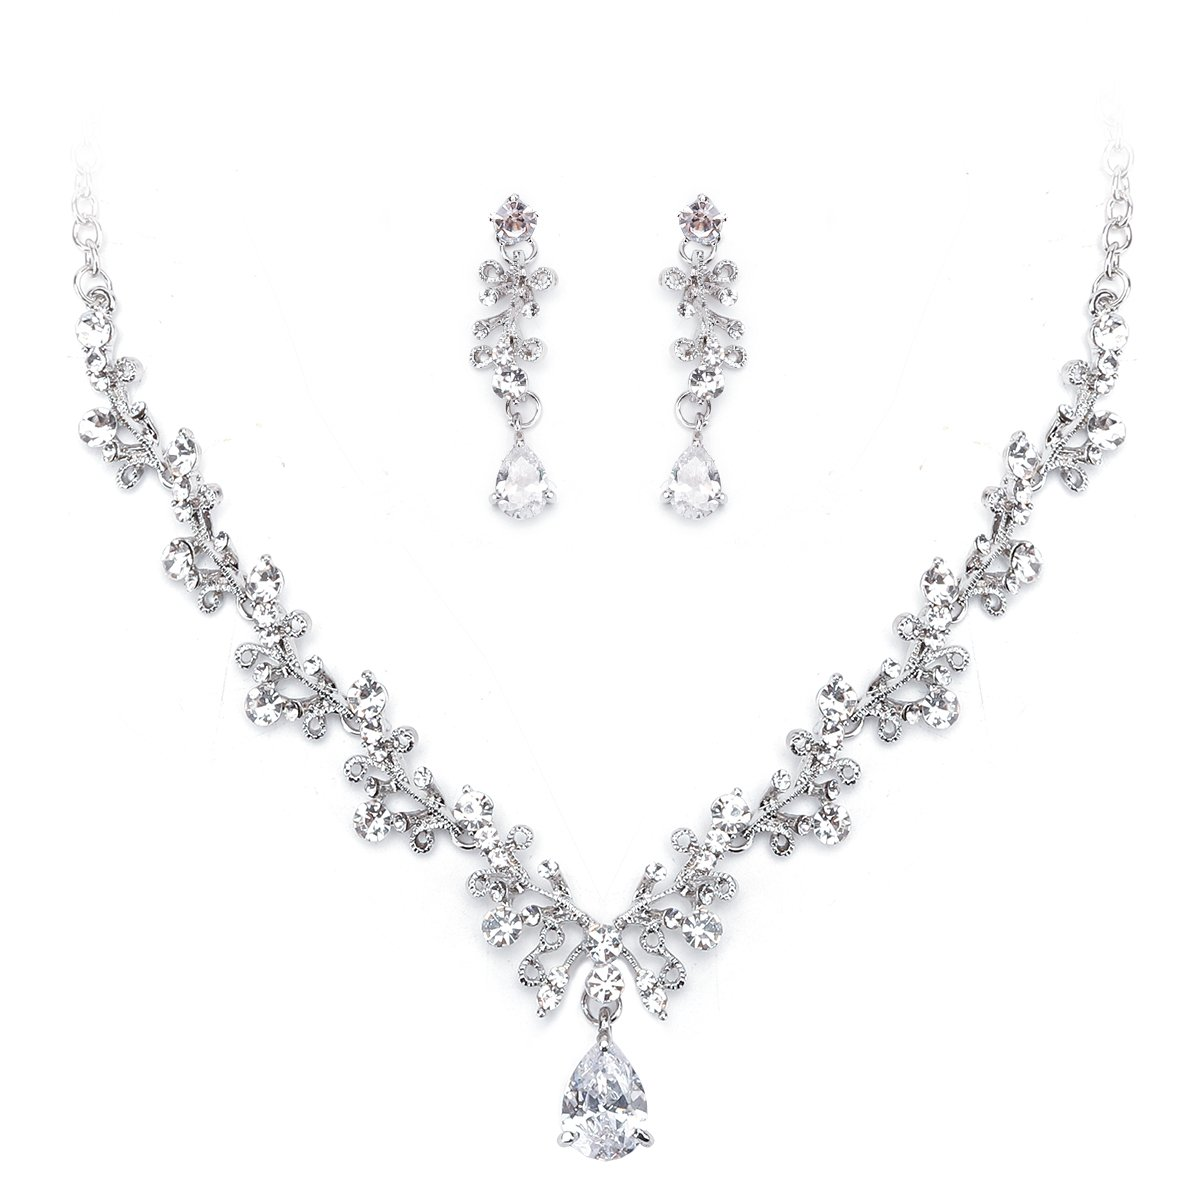 Ezerbery Women's Wedding Bridal Austrian Crystal Teardrop Cluster Statement Necklace Dangle Earrings Jewelry Set For Wedding, Prom, Bridesmaids or Mother of Bride